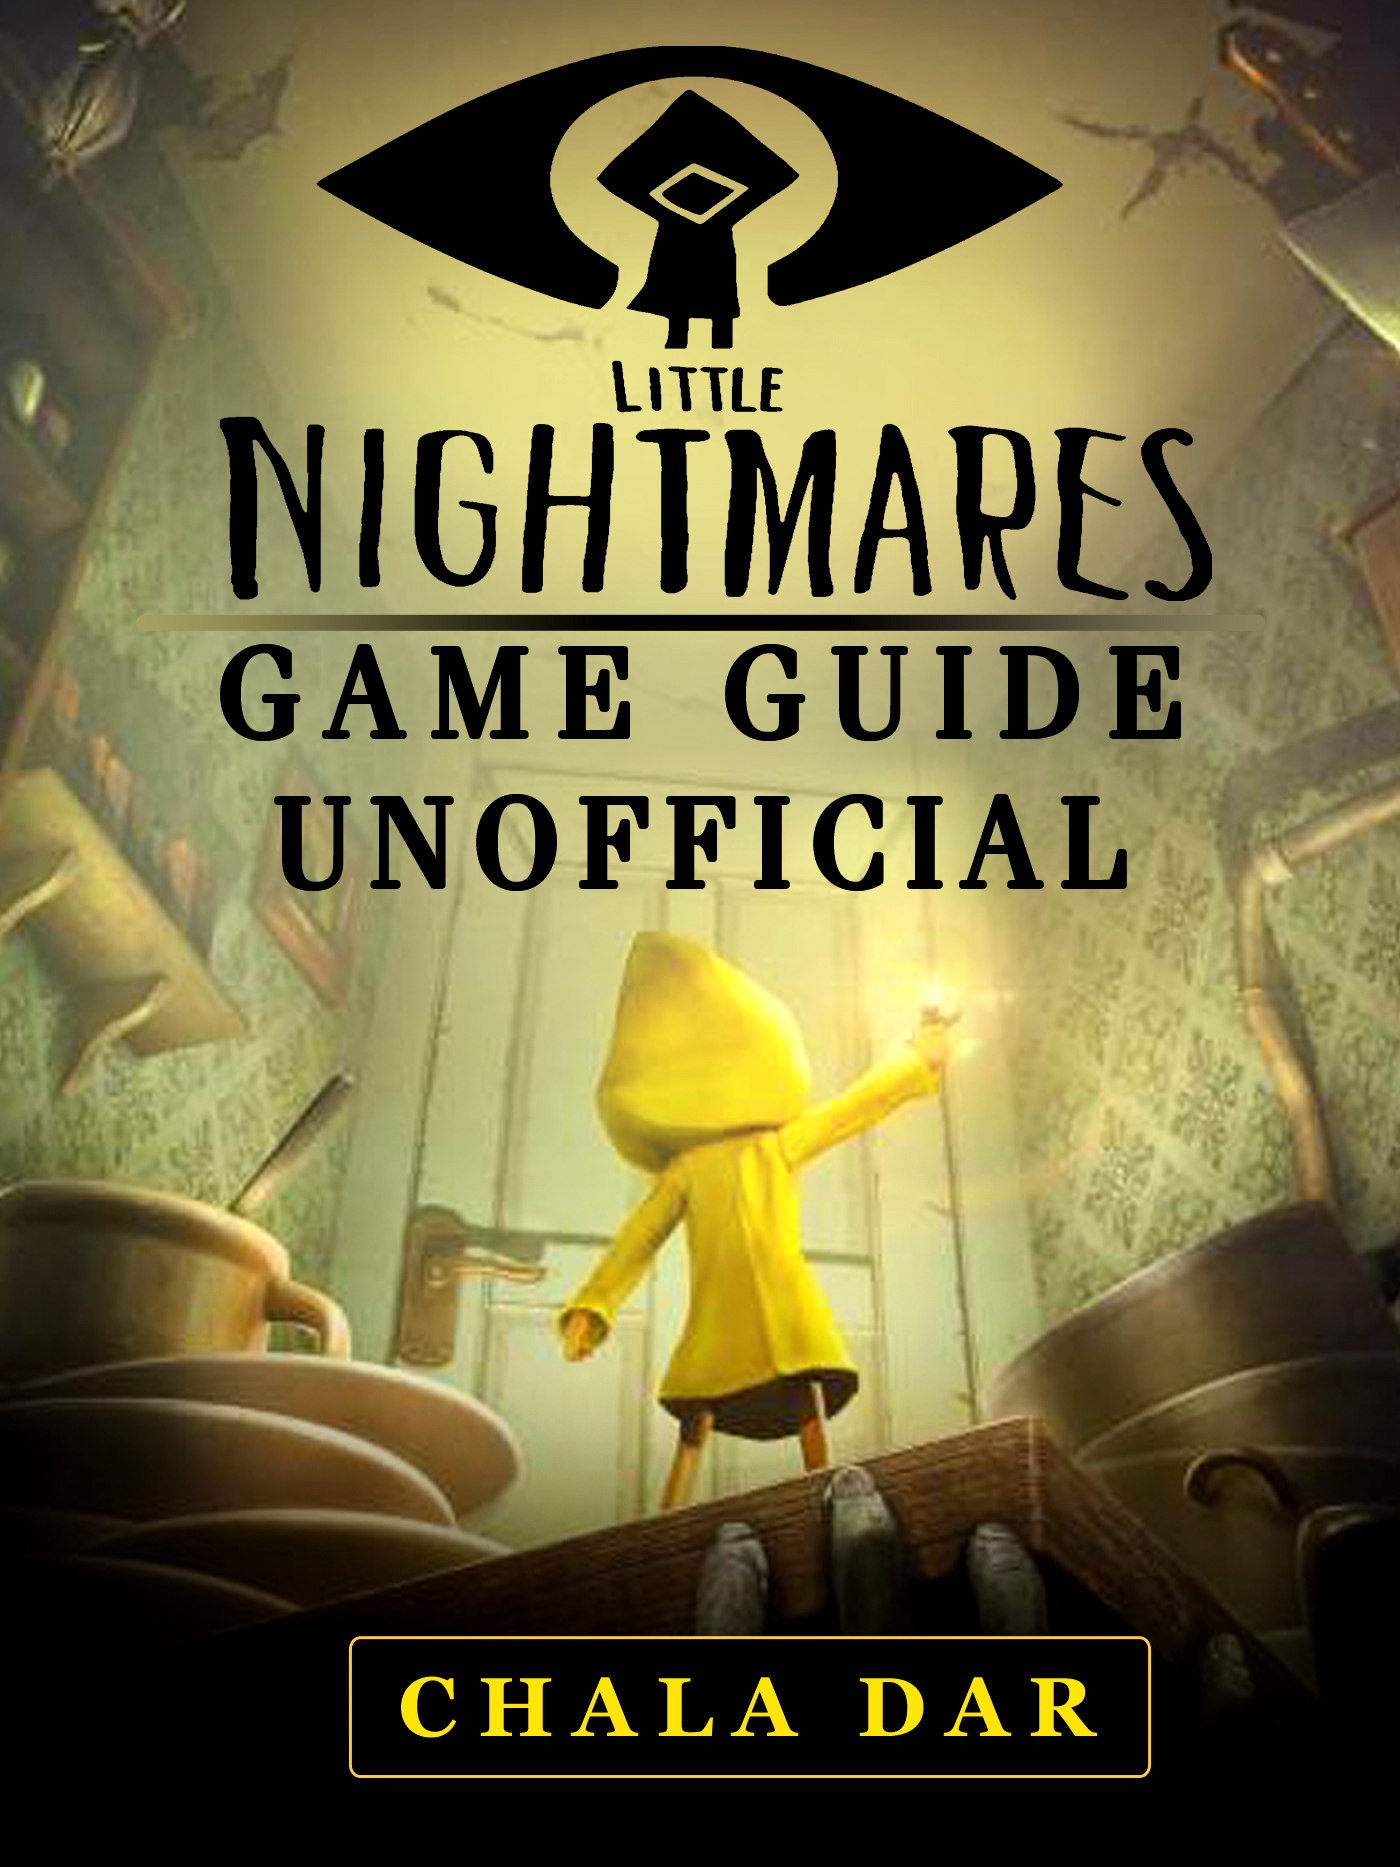 Little Nightmares Game Guide Unofficial By Chala Dar